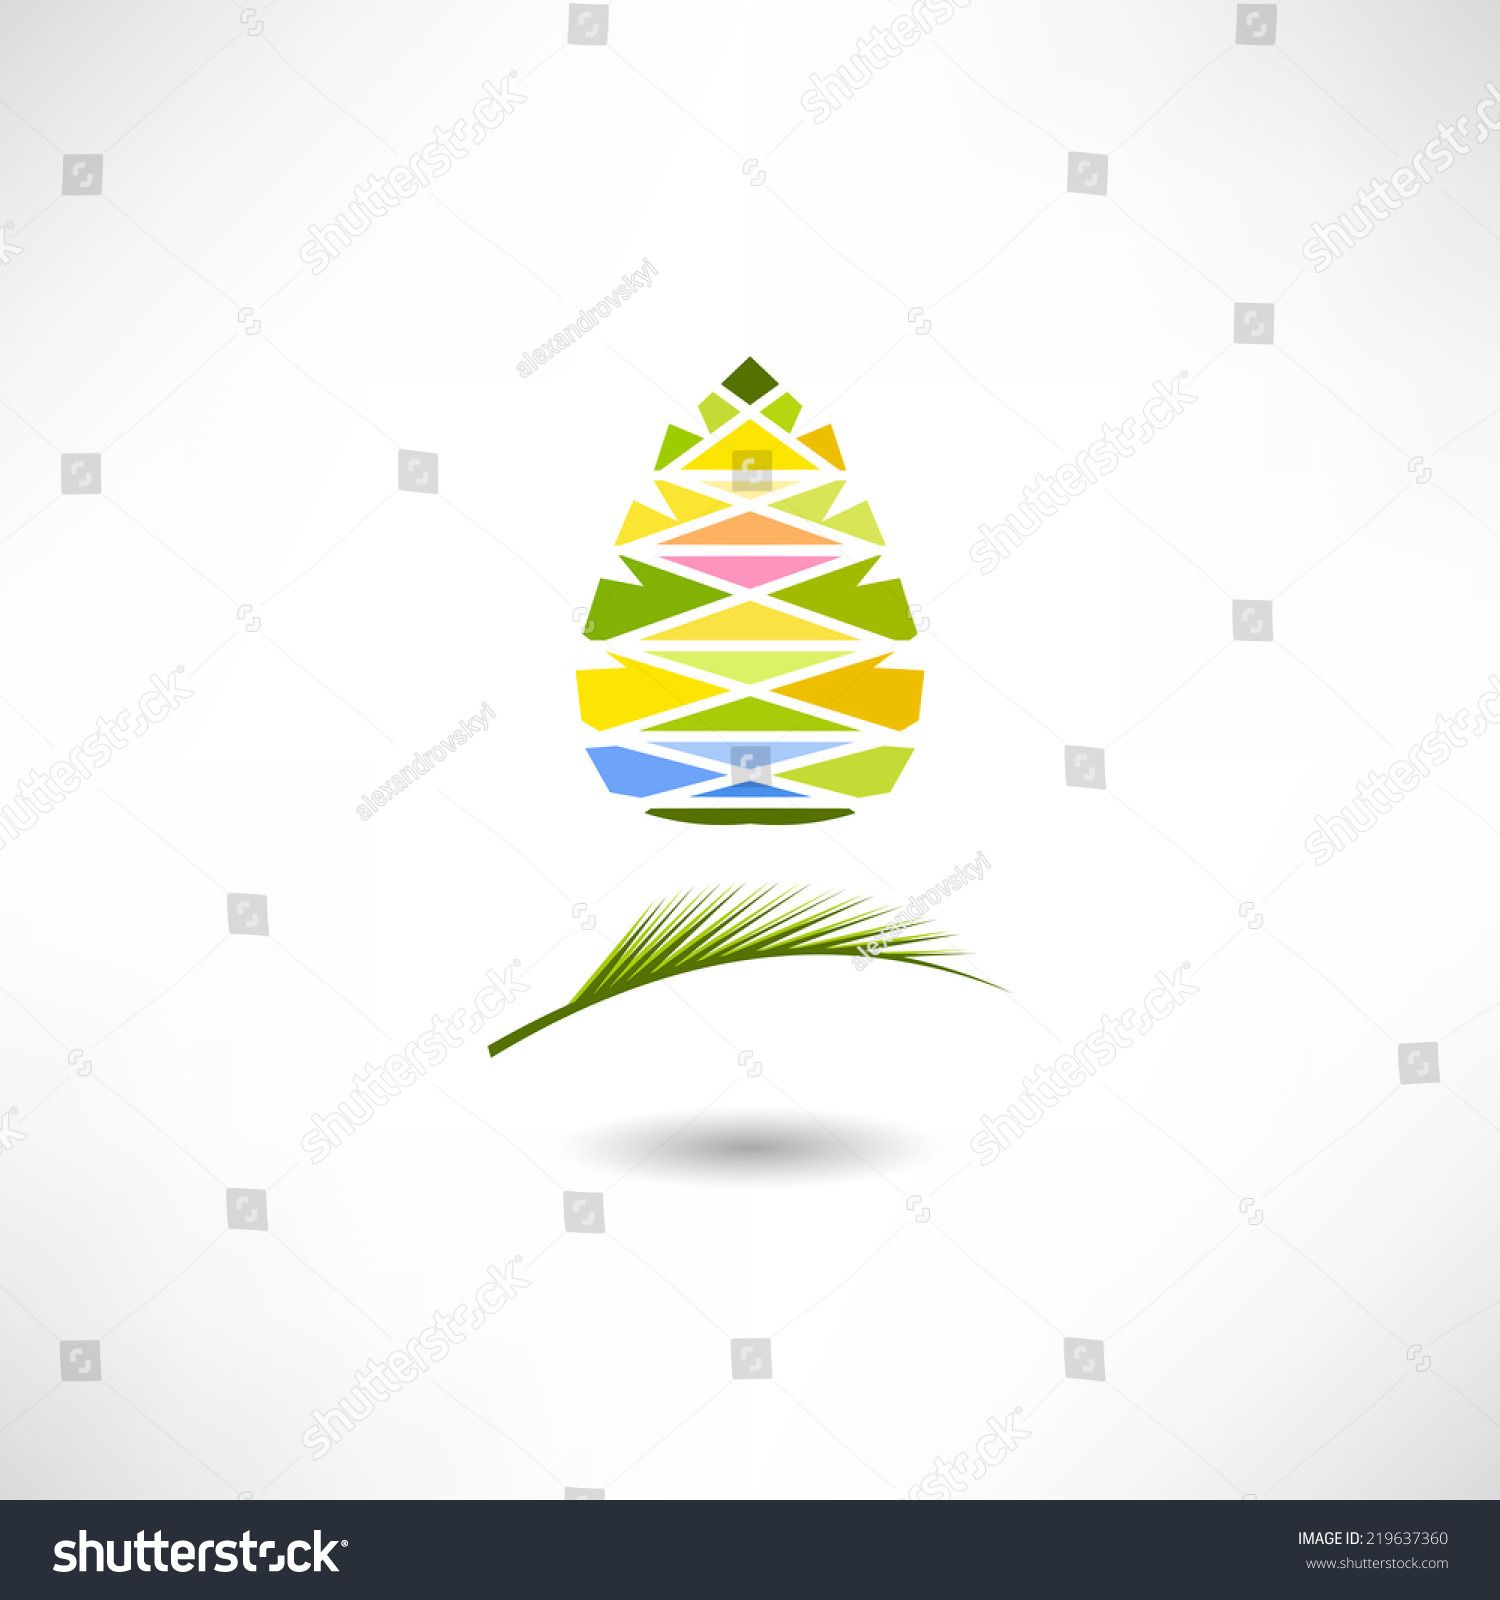 pinecone icon stock vector illustration 219637360